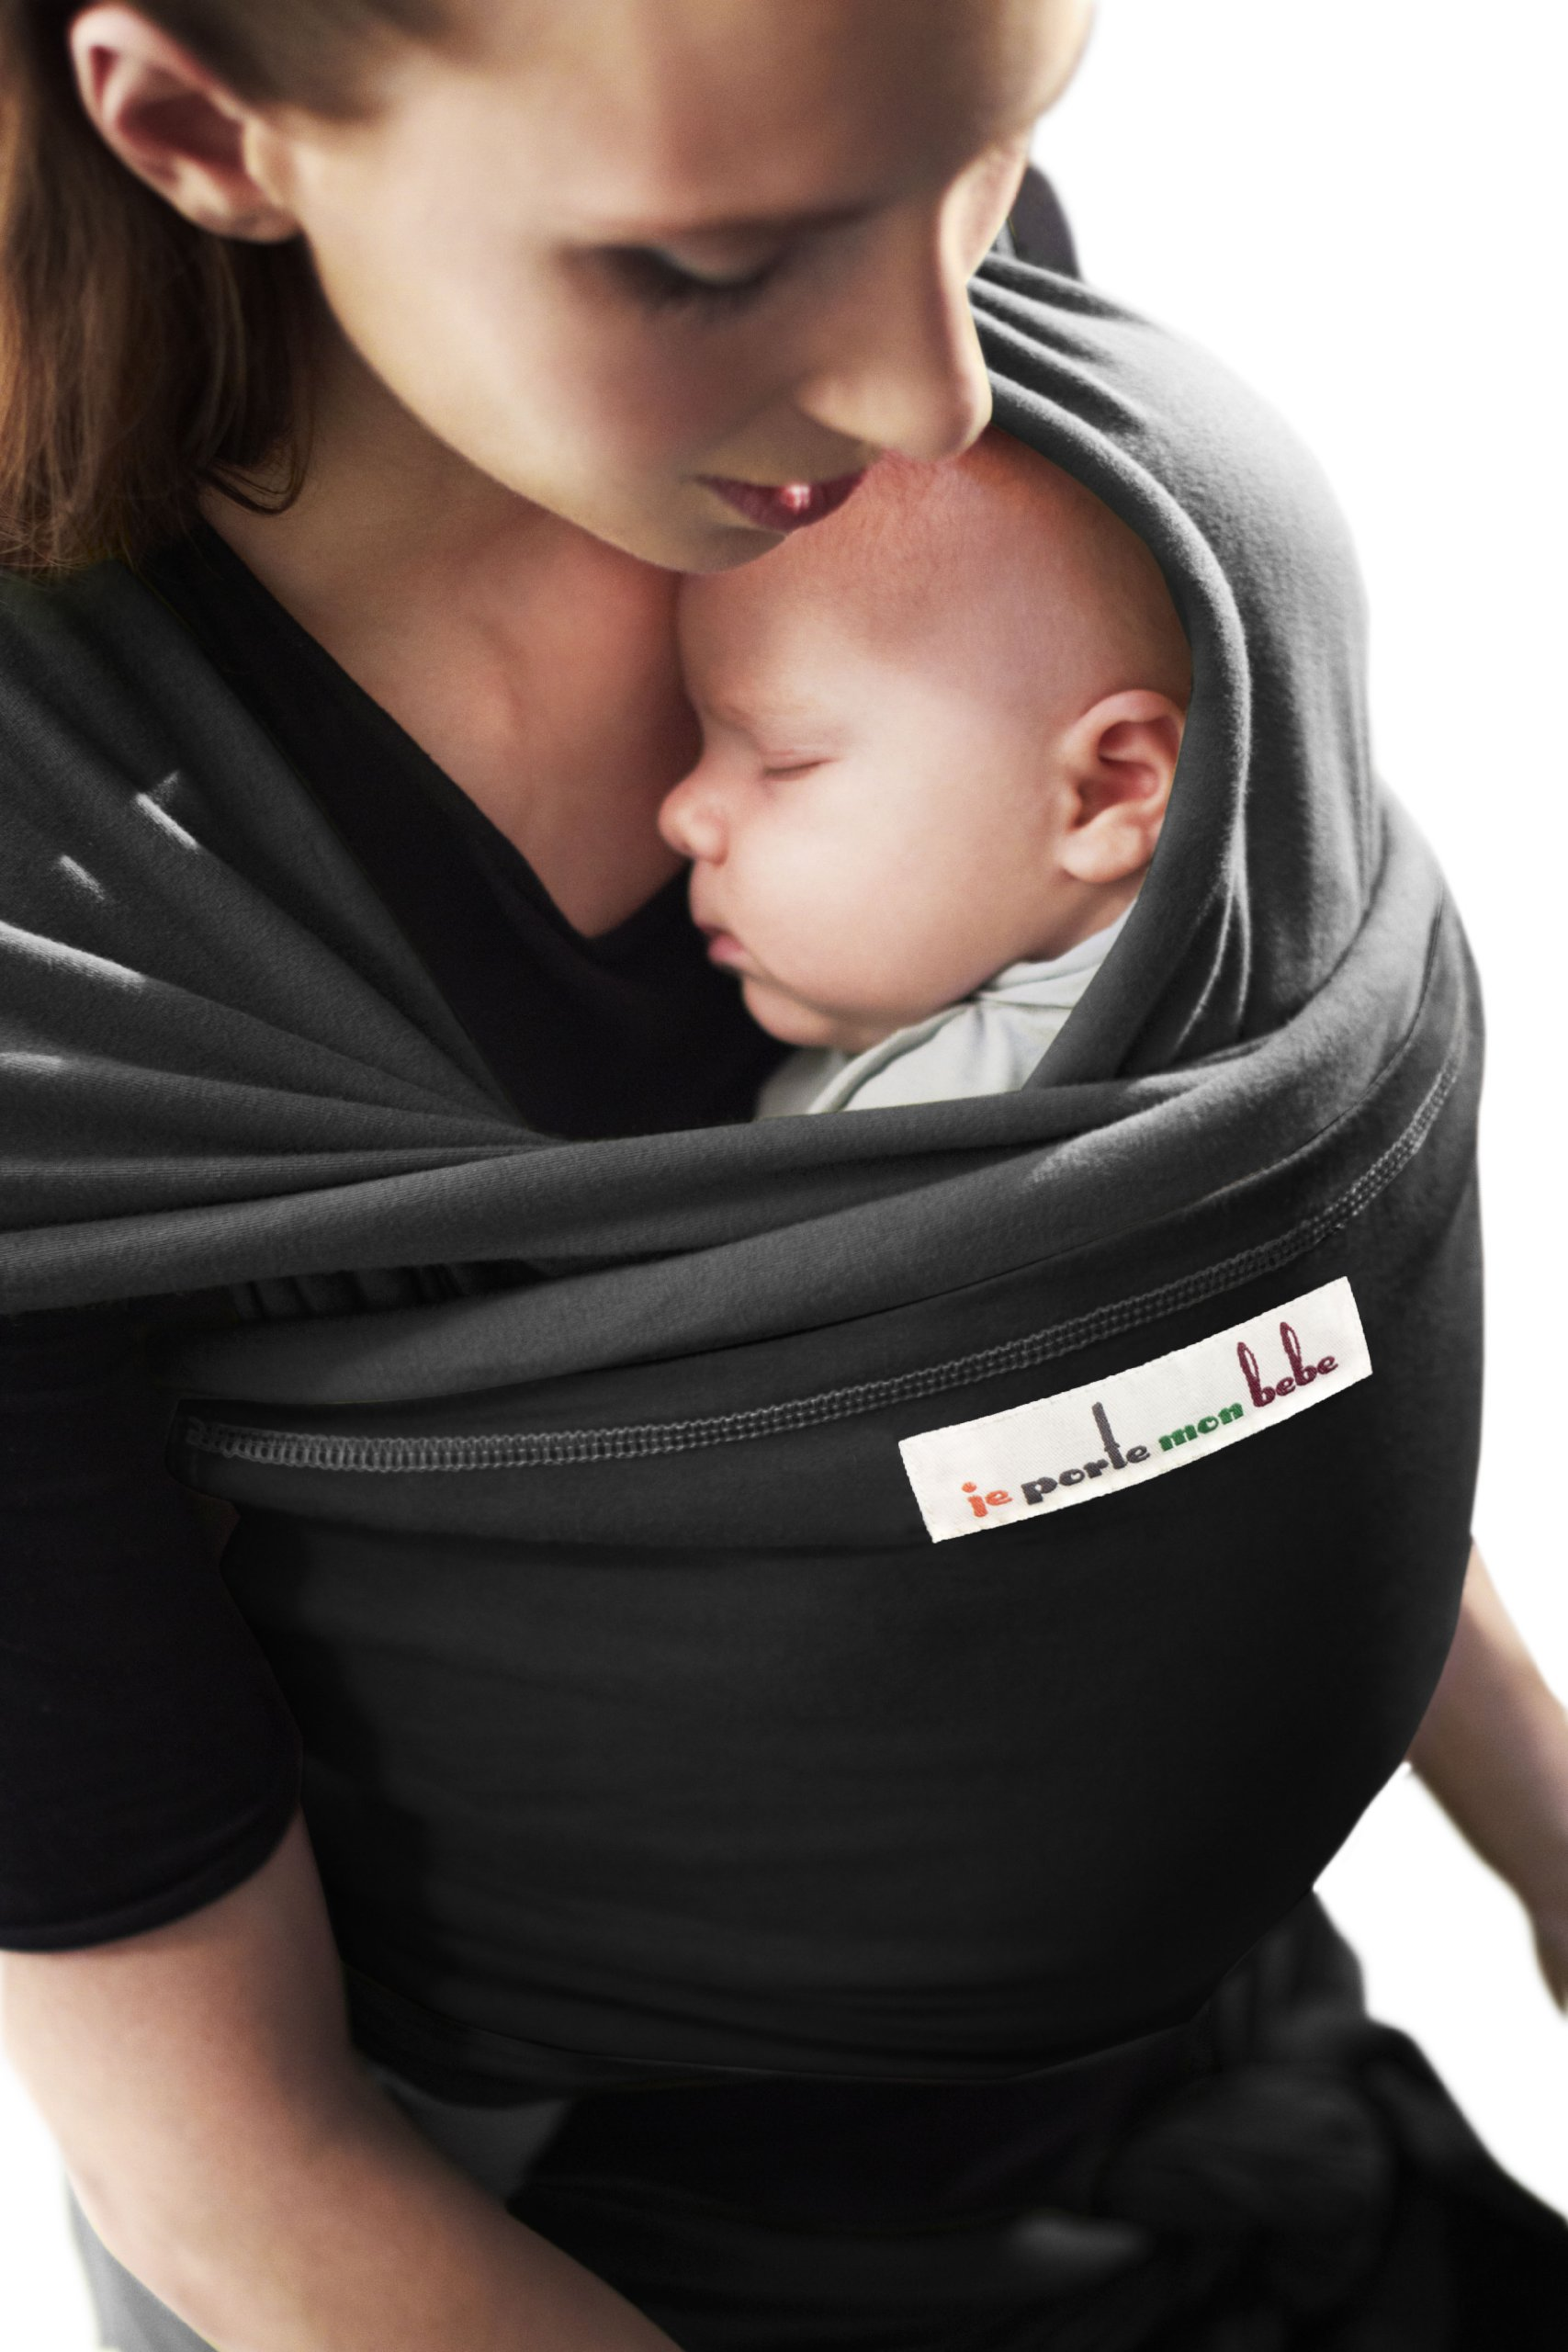 Je Porte Mon Bébé L'Originale Baby Sling Je Porte Mon Bébé High Quality Elastic Baby Carrier Dense, elastic and breathable material Great support, fits your baby's body like a second skin. 18